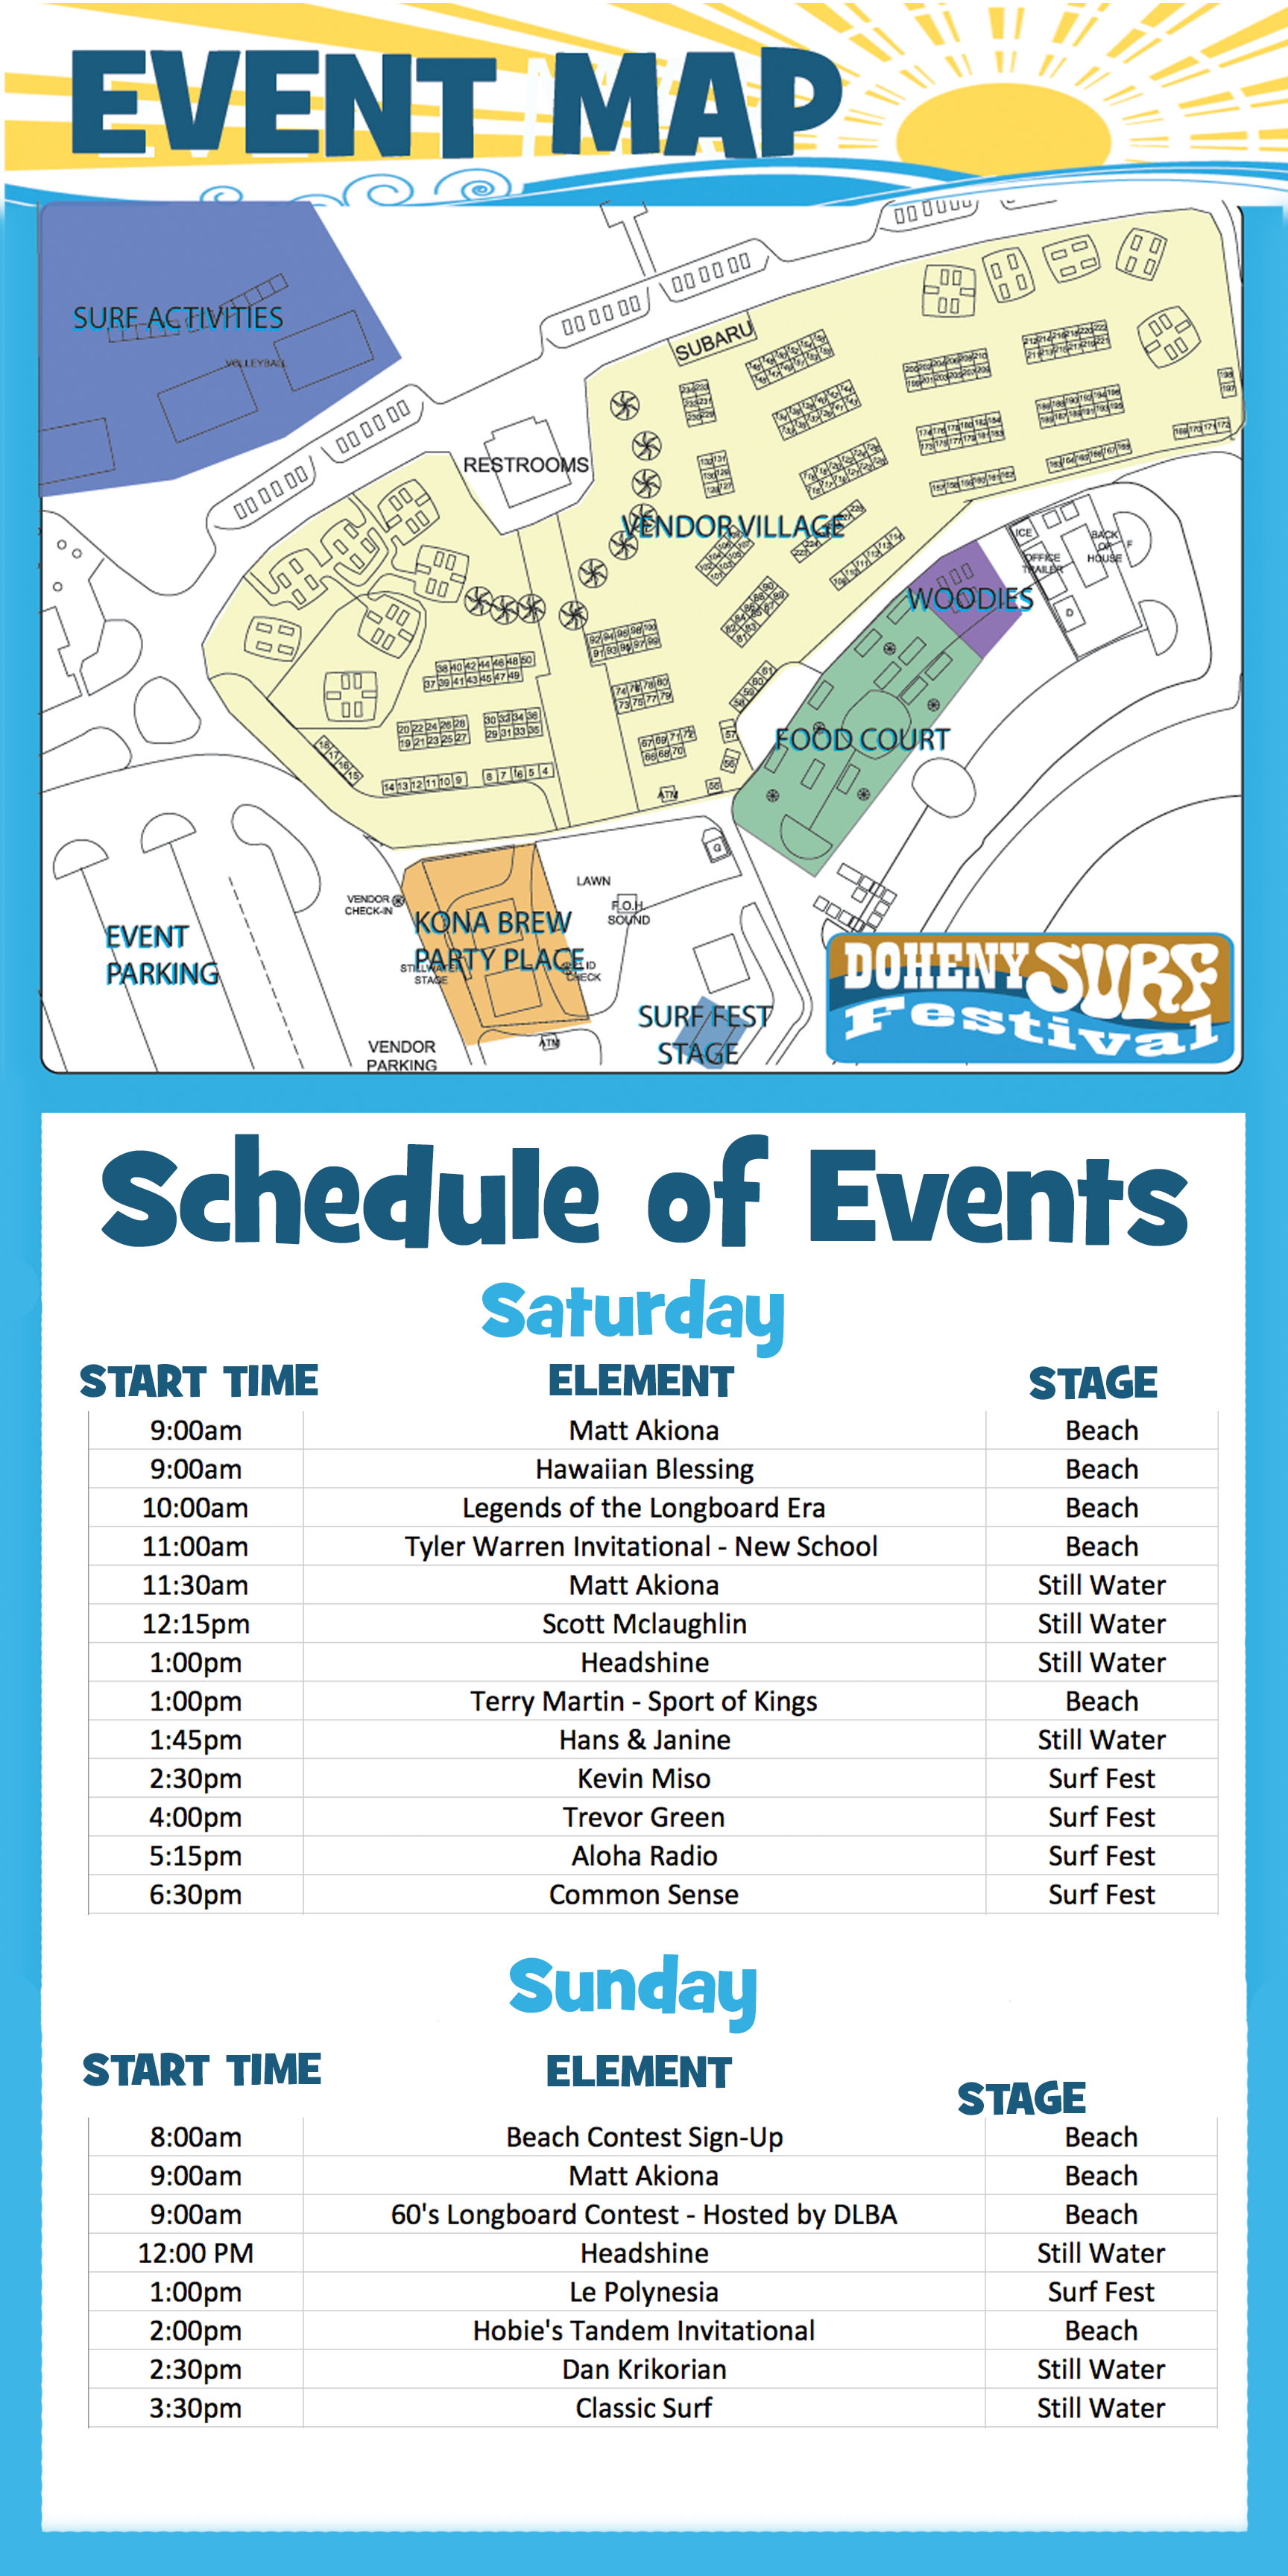 DSF 2013 Map and Schedule